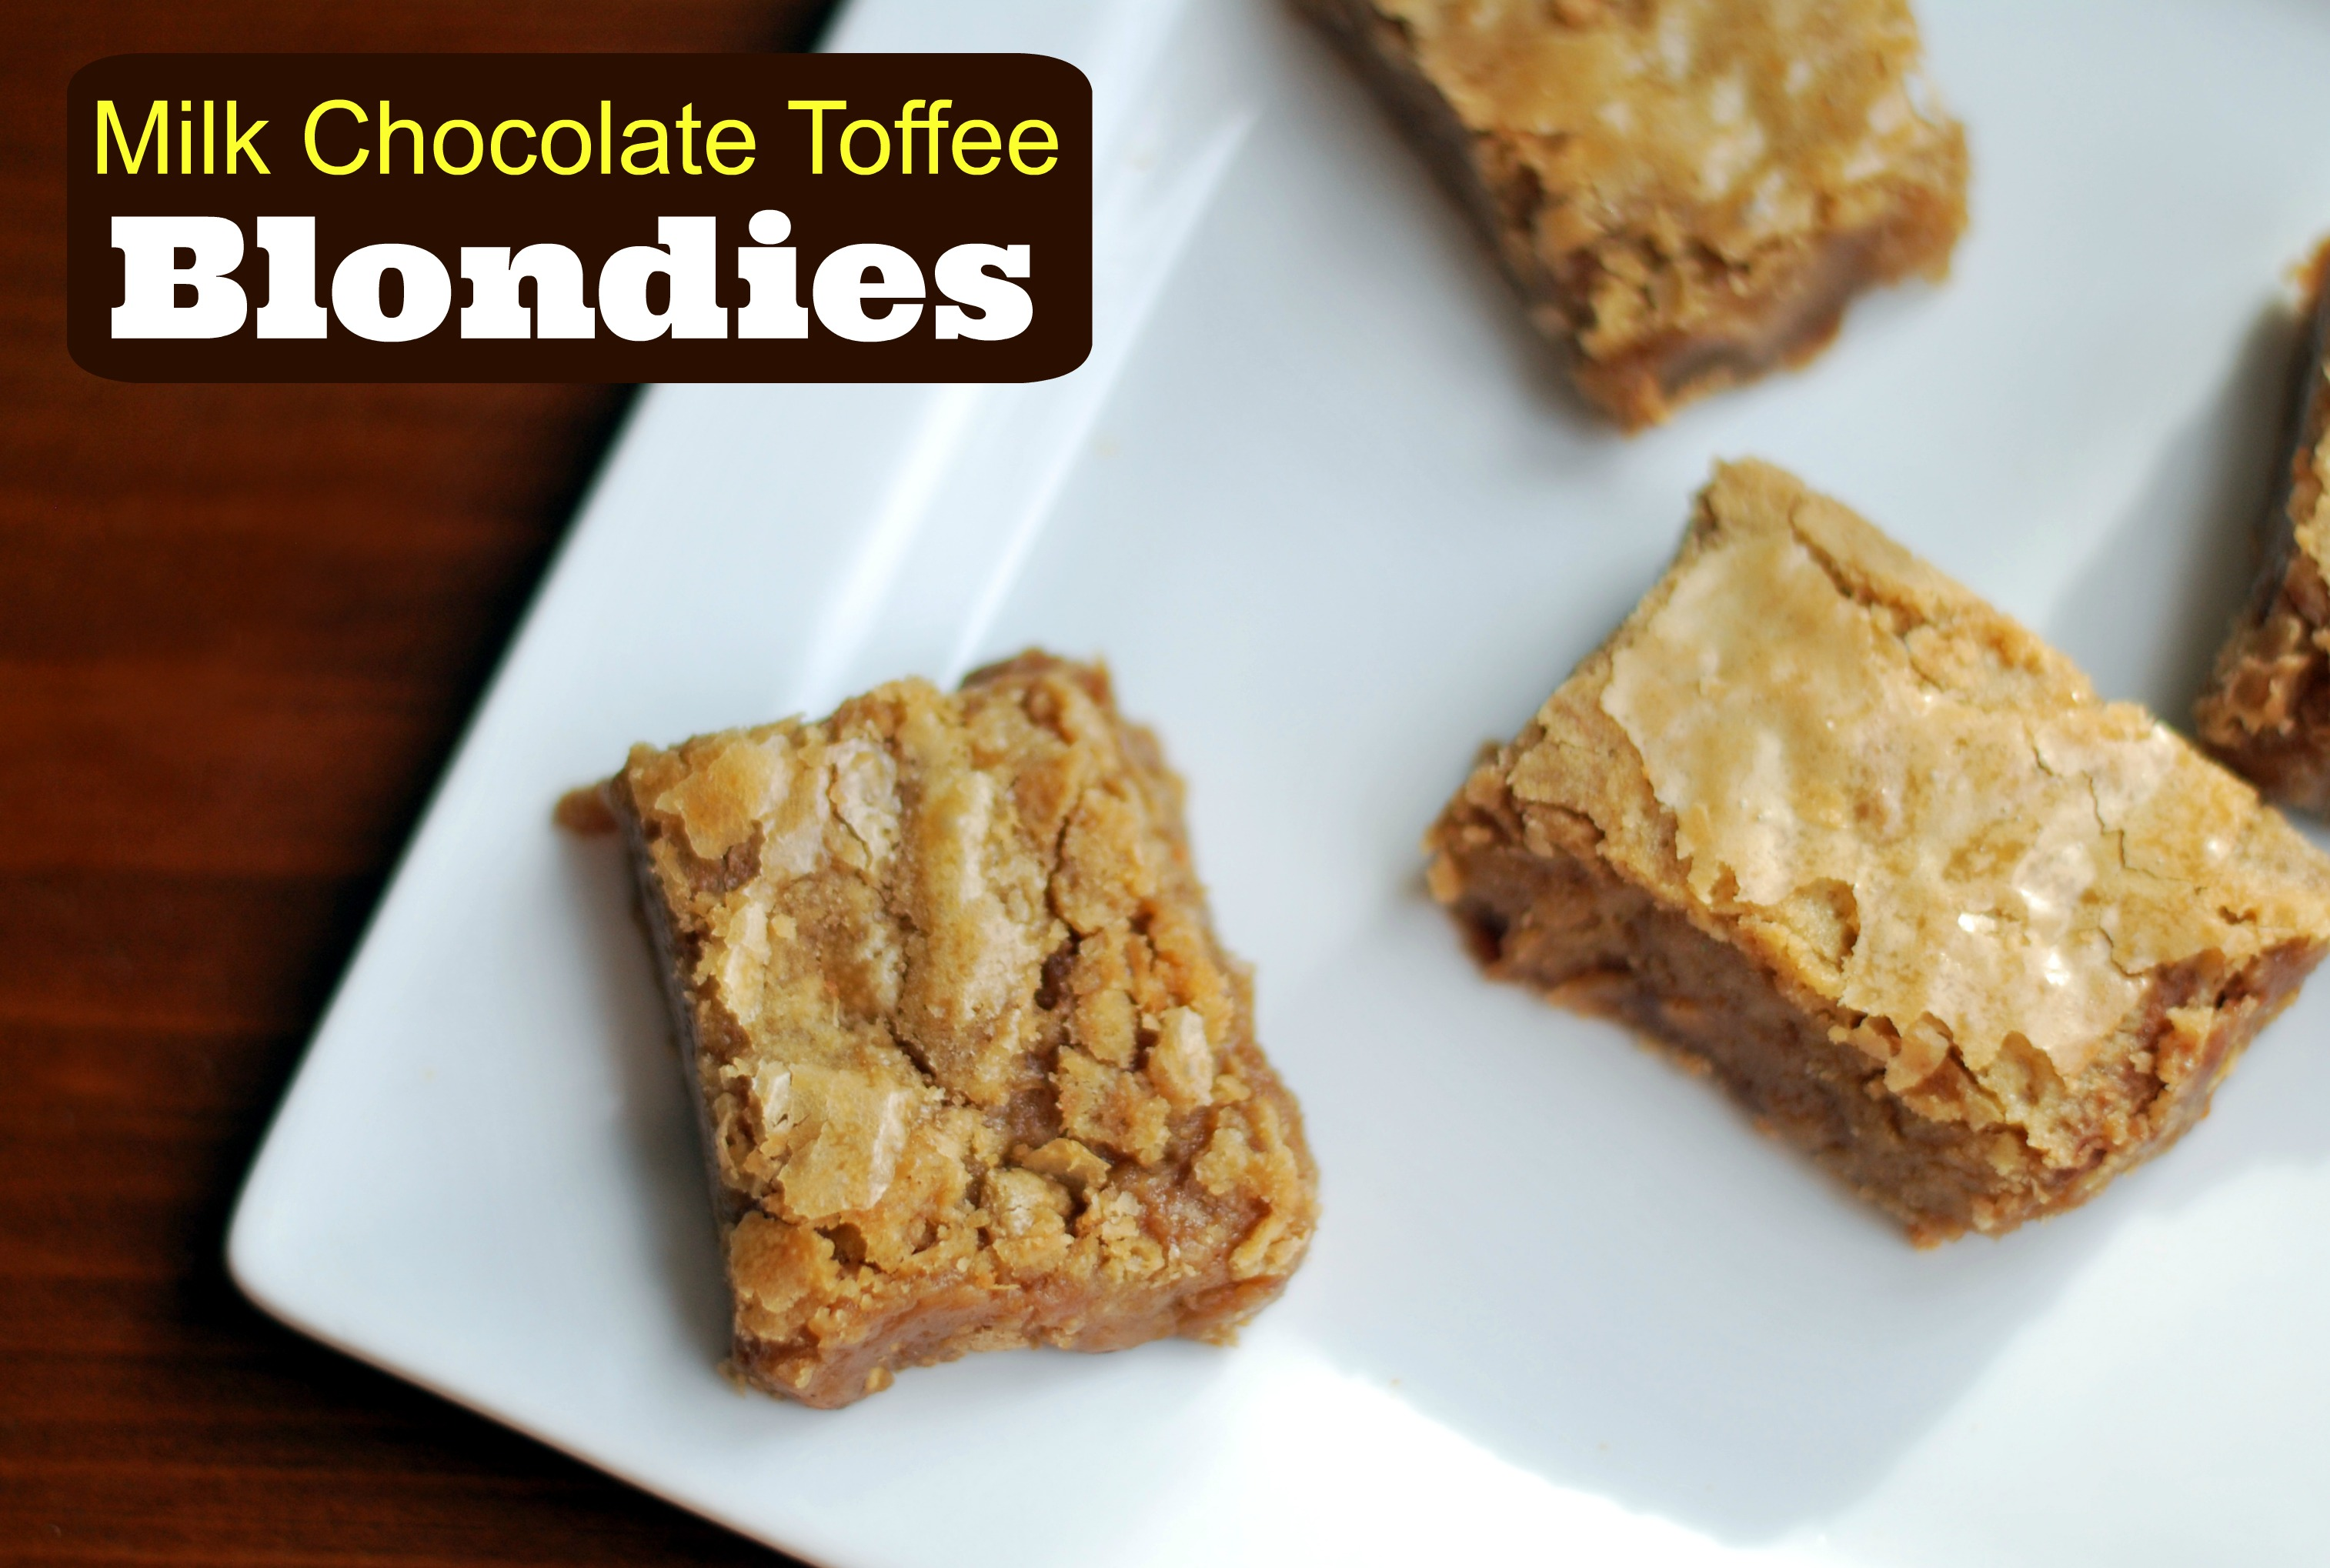 Milk Chocolate Toffee Blondies